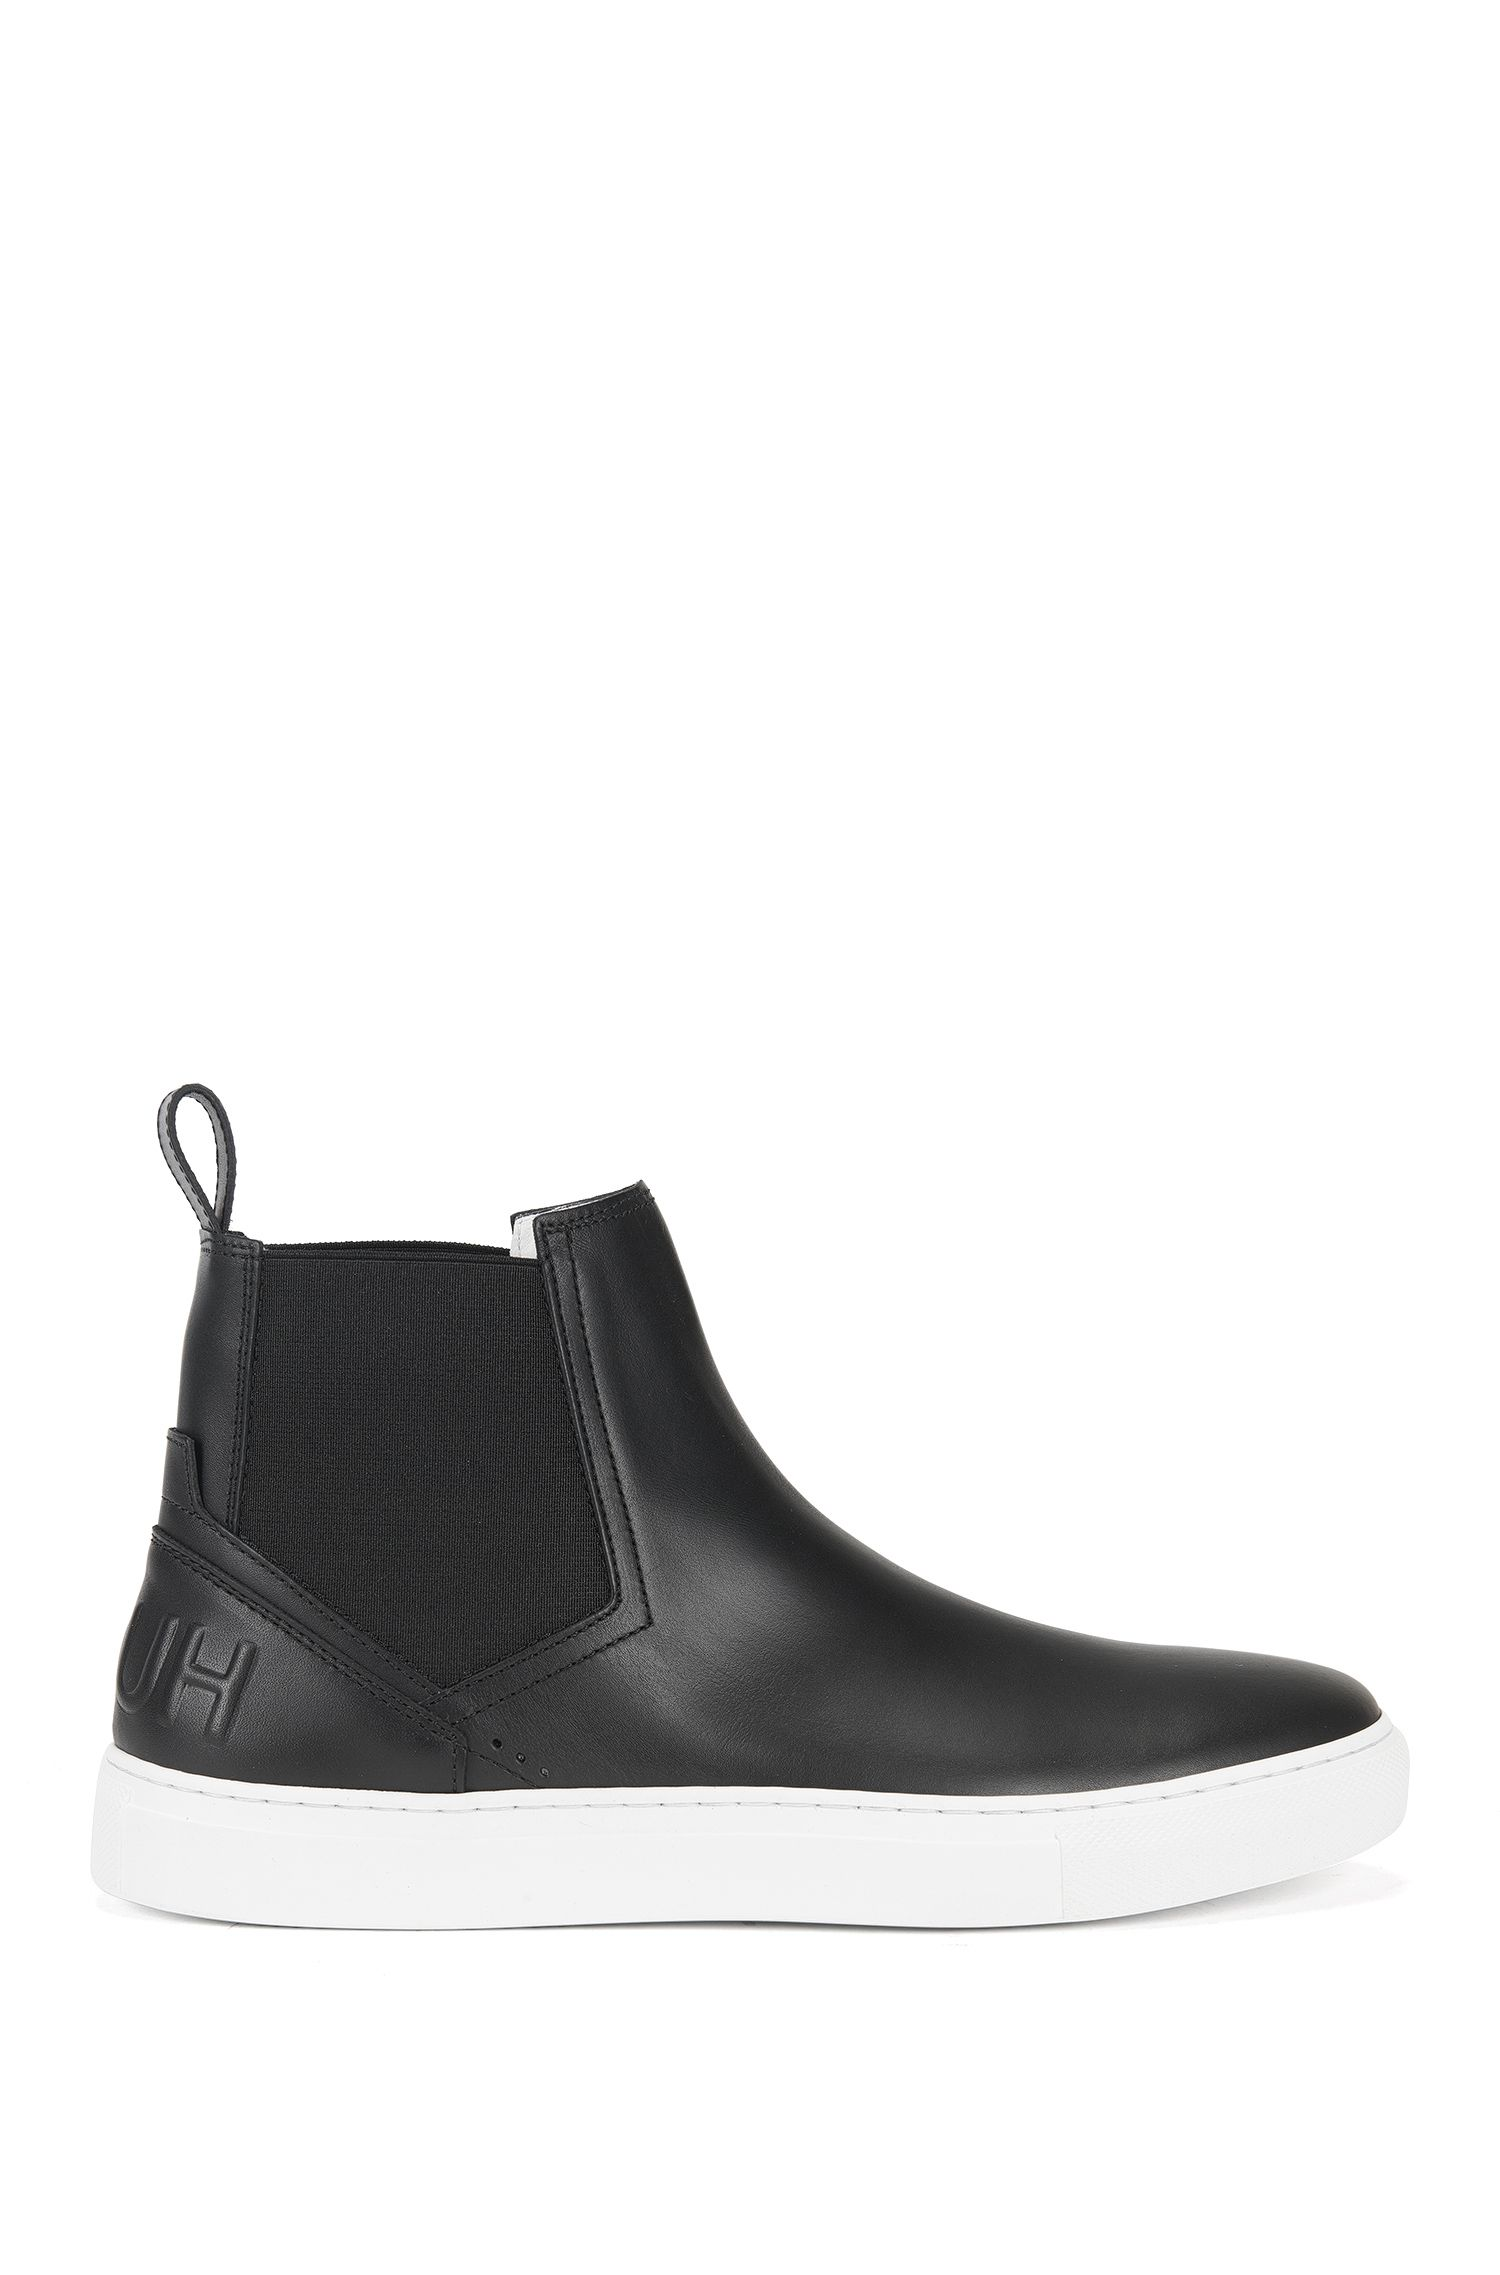 Chelsea-boot trainers in soft leather